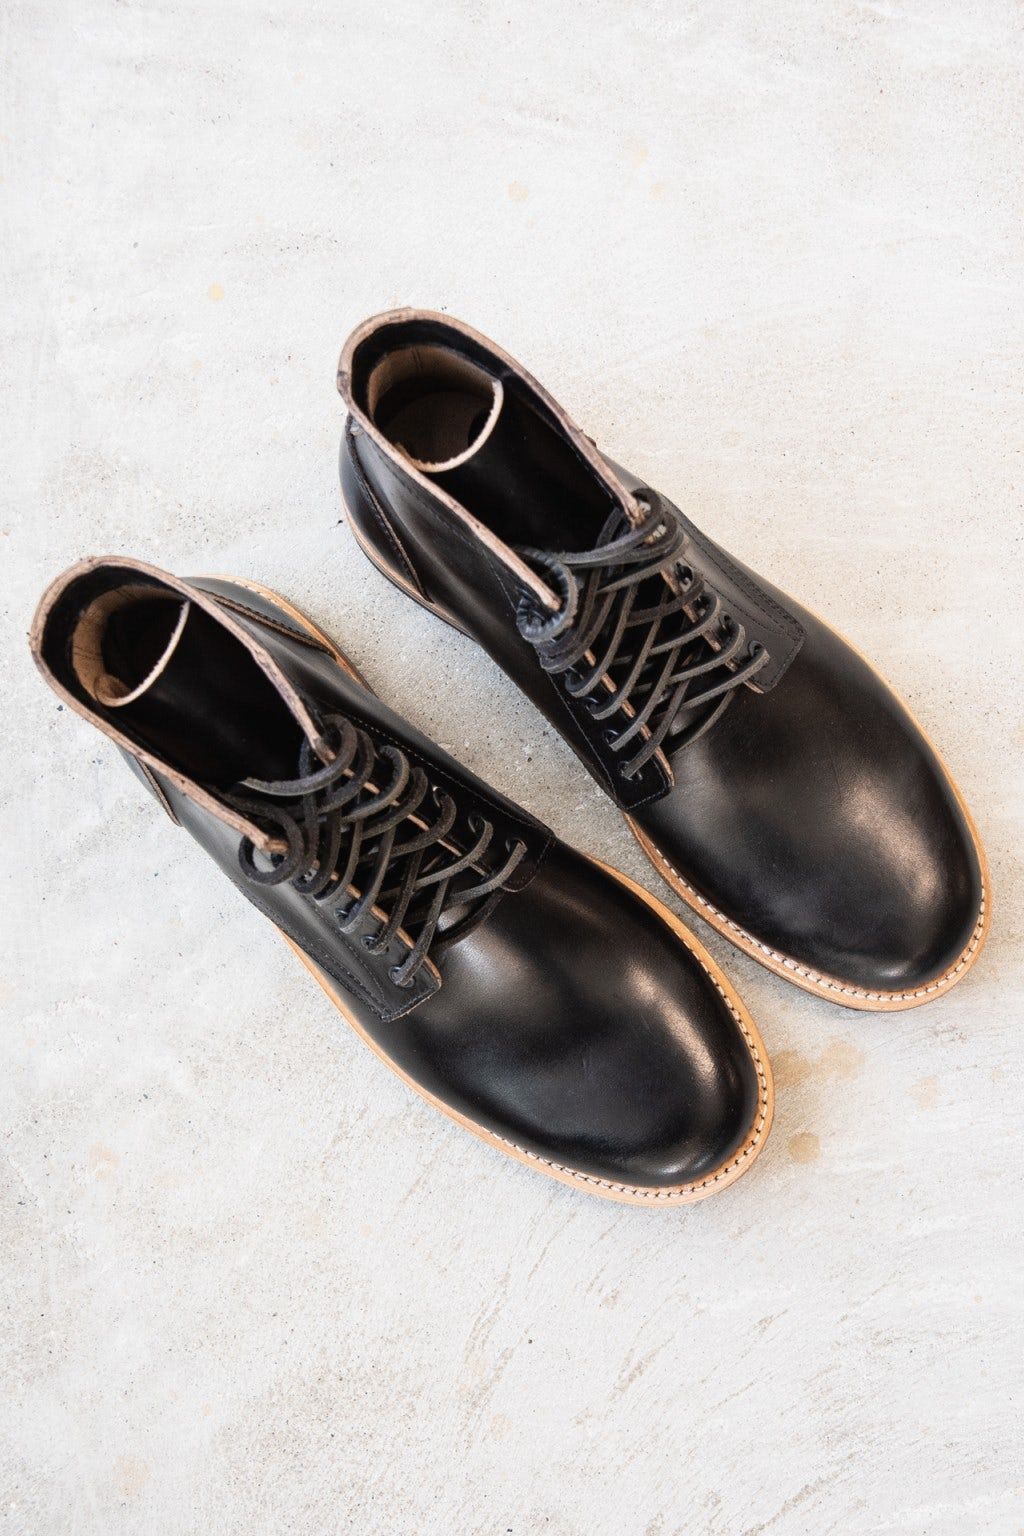 Oak Street Bootmakers Trench Boot Black Chromexcel